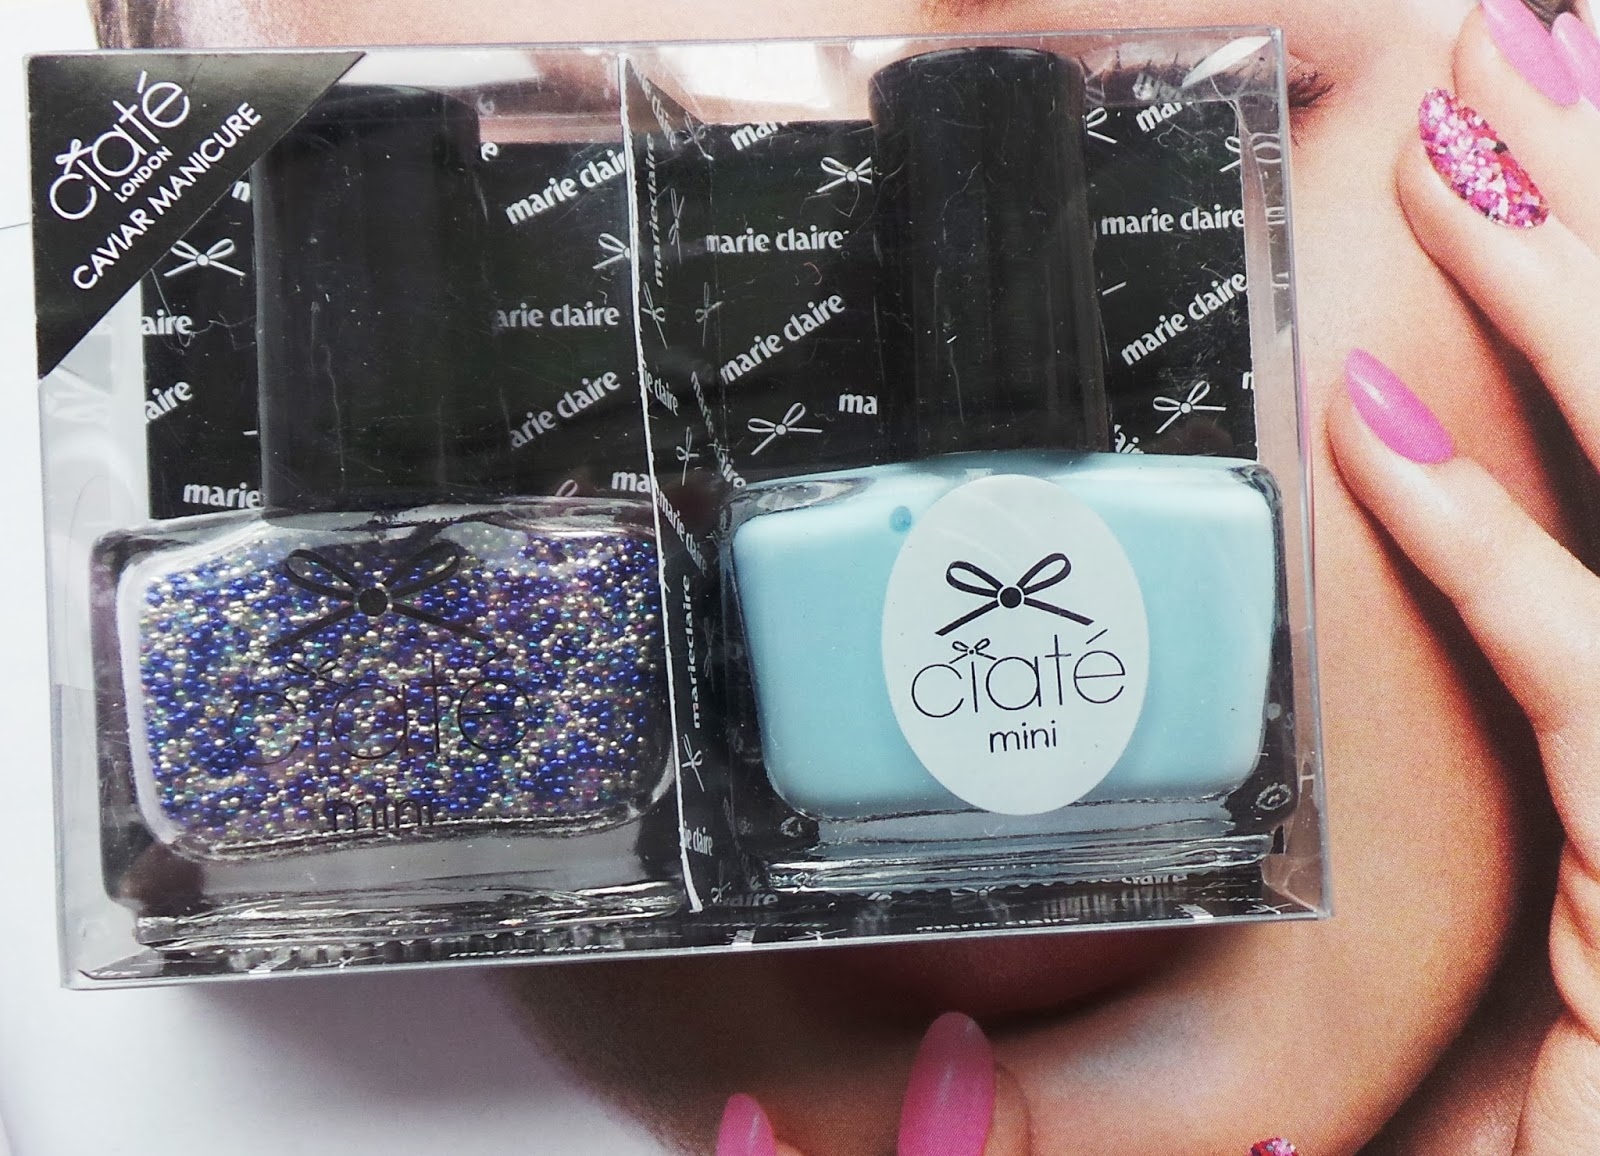 ciate ferris wheel swatch, ciate ferris wheel review, july magazine freebies 2014, marie claire magazine freebies july 2014, ciate caviar kit, ciate marie claire magazine freebies, caviar manicure review, ciate caviar, nail blog, nail blogger, nbloggers, uk nail blog, uk nail art blog, beauty blogger